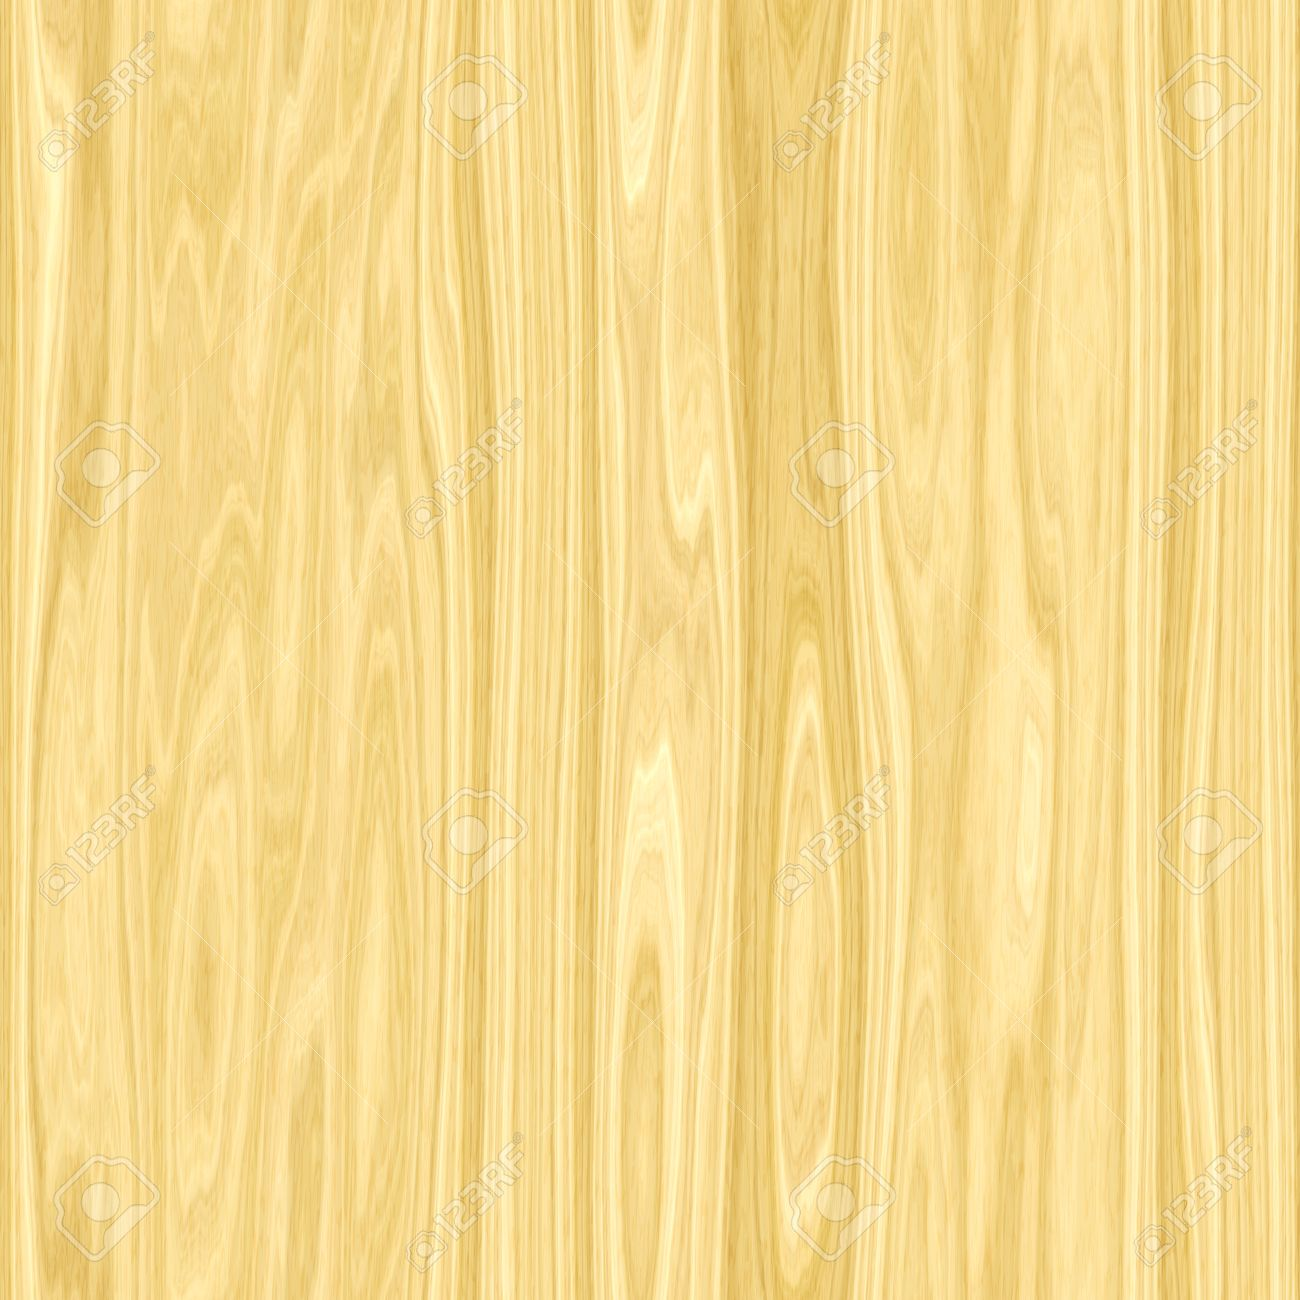 Seamless light wood generated hires texture Stock Photo  25968286 Light Wood Generated Hires Texture Picture